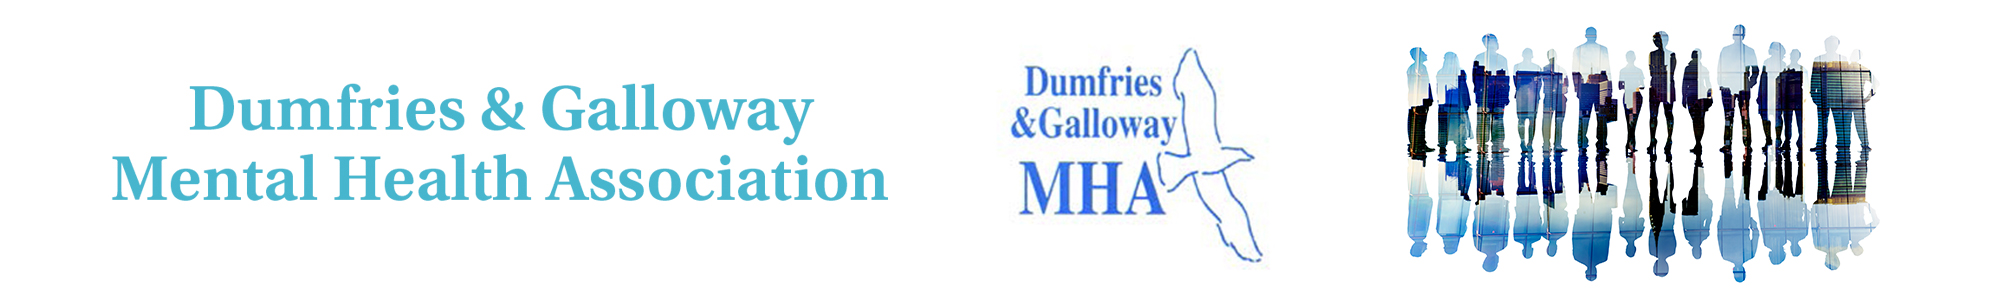 Dumfries & Galloway Mental Health Association (MHA)*